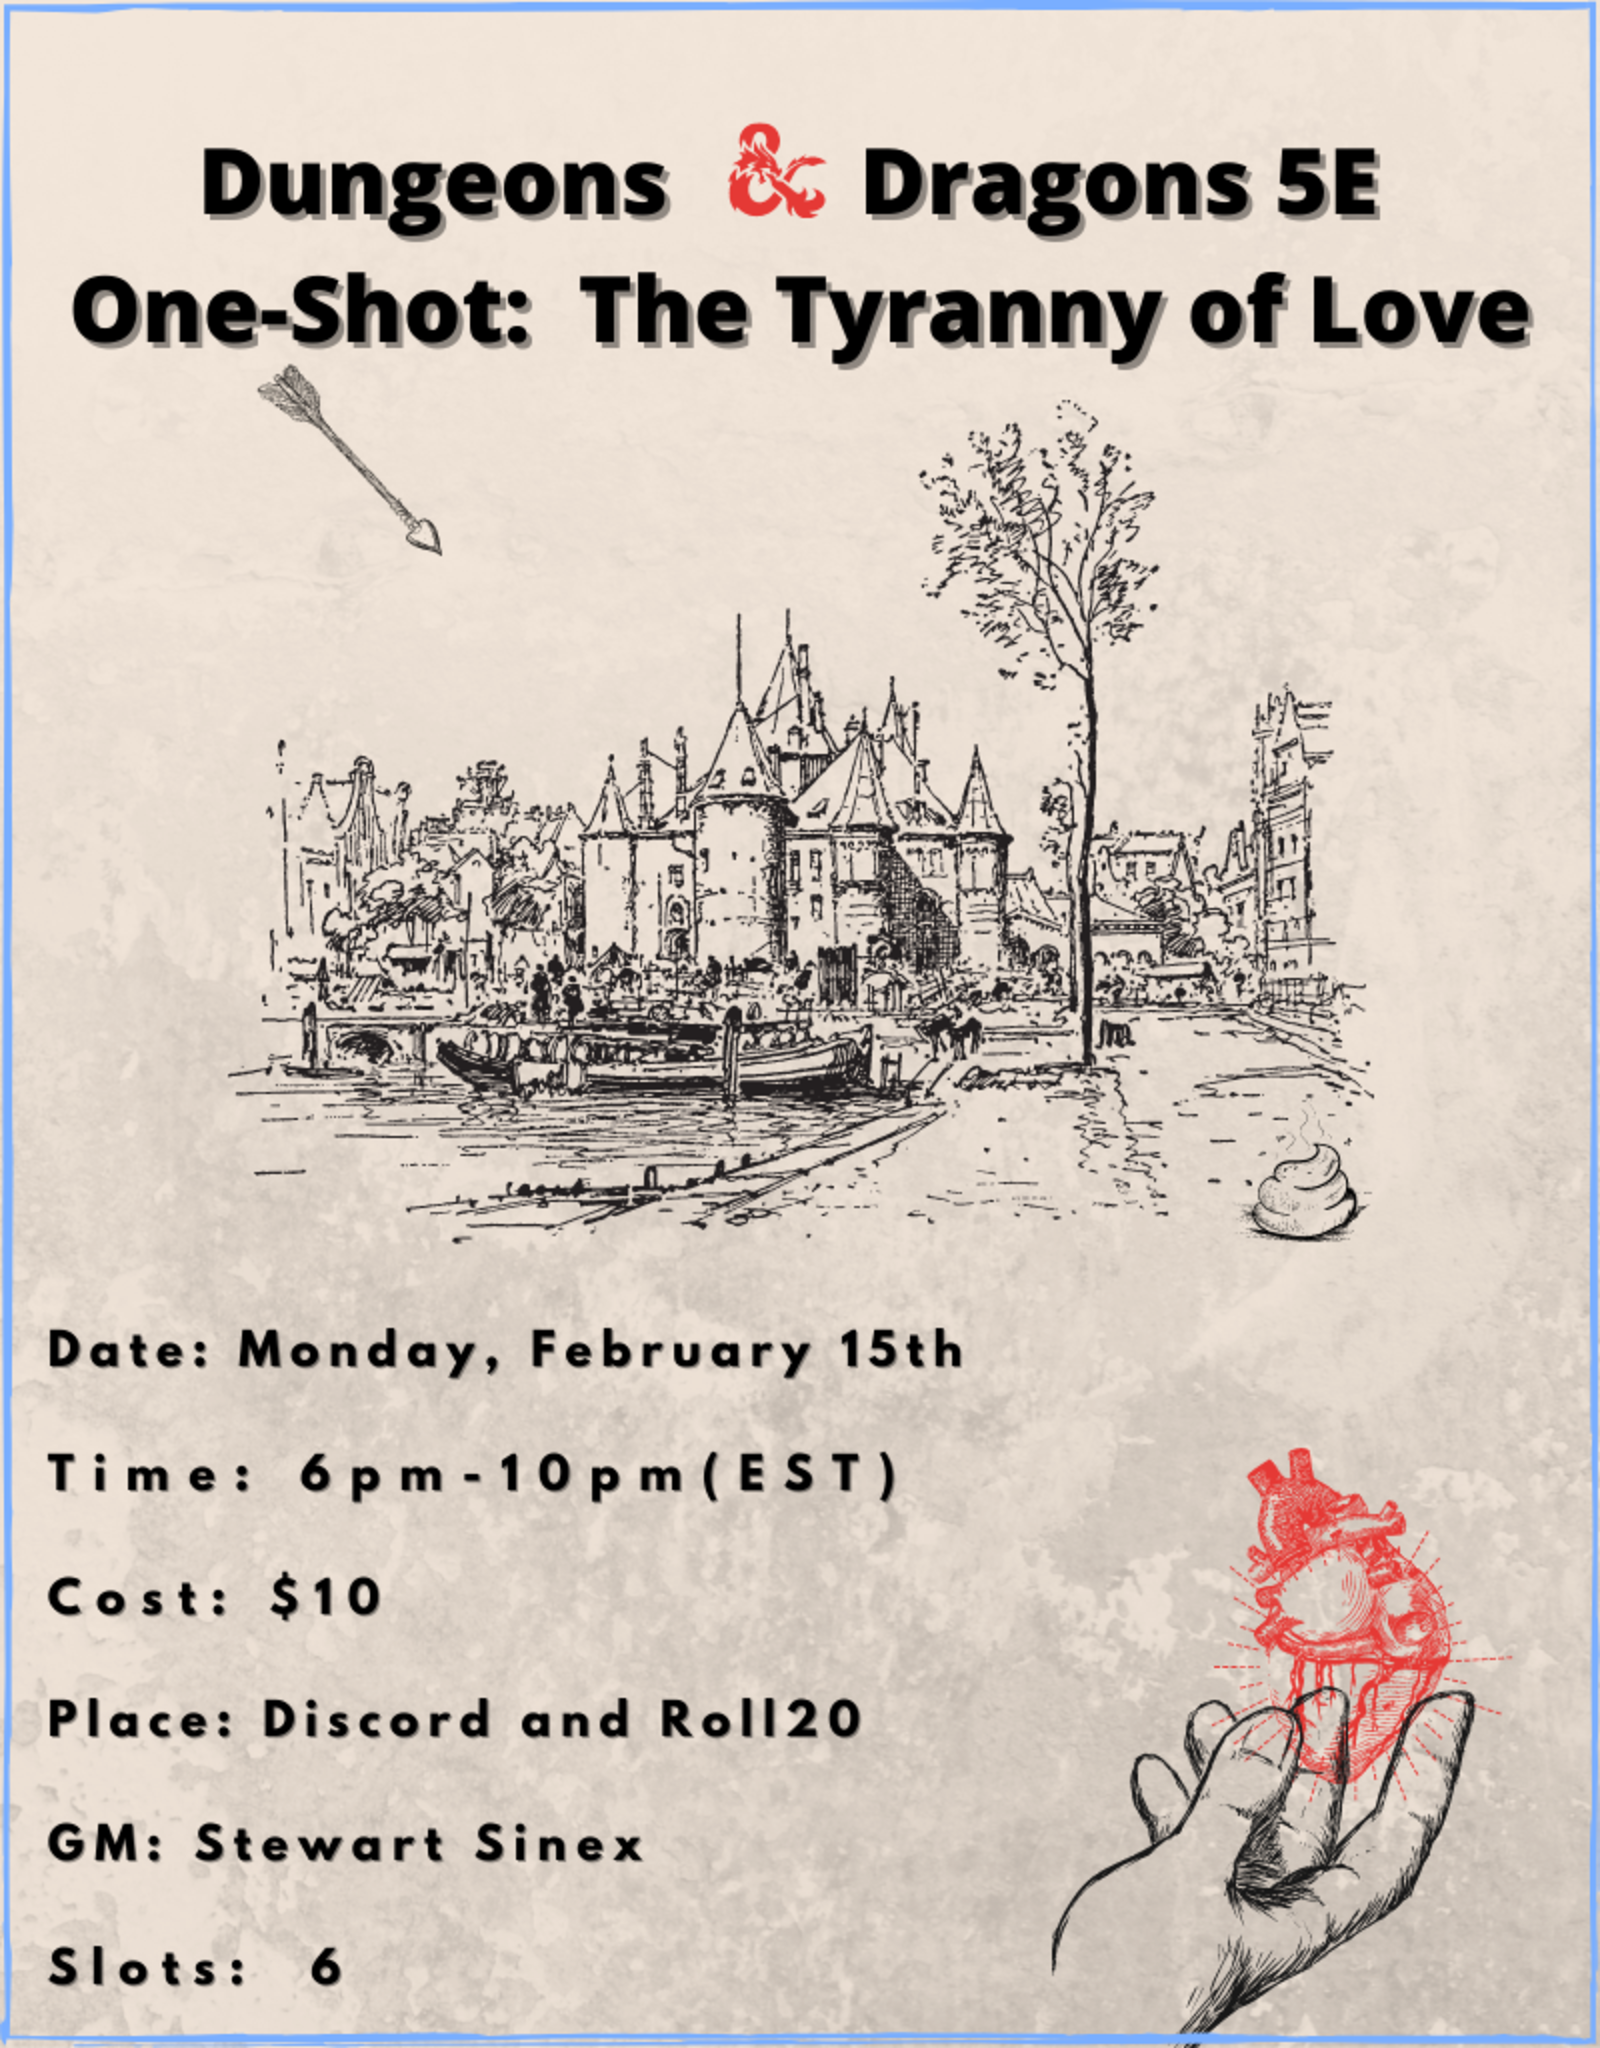 Dungeons and Dragons 5E One-Shot The Tyranny of Love